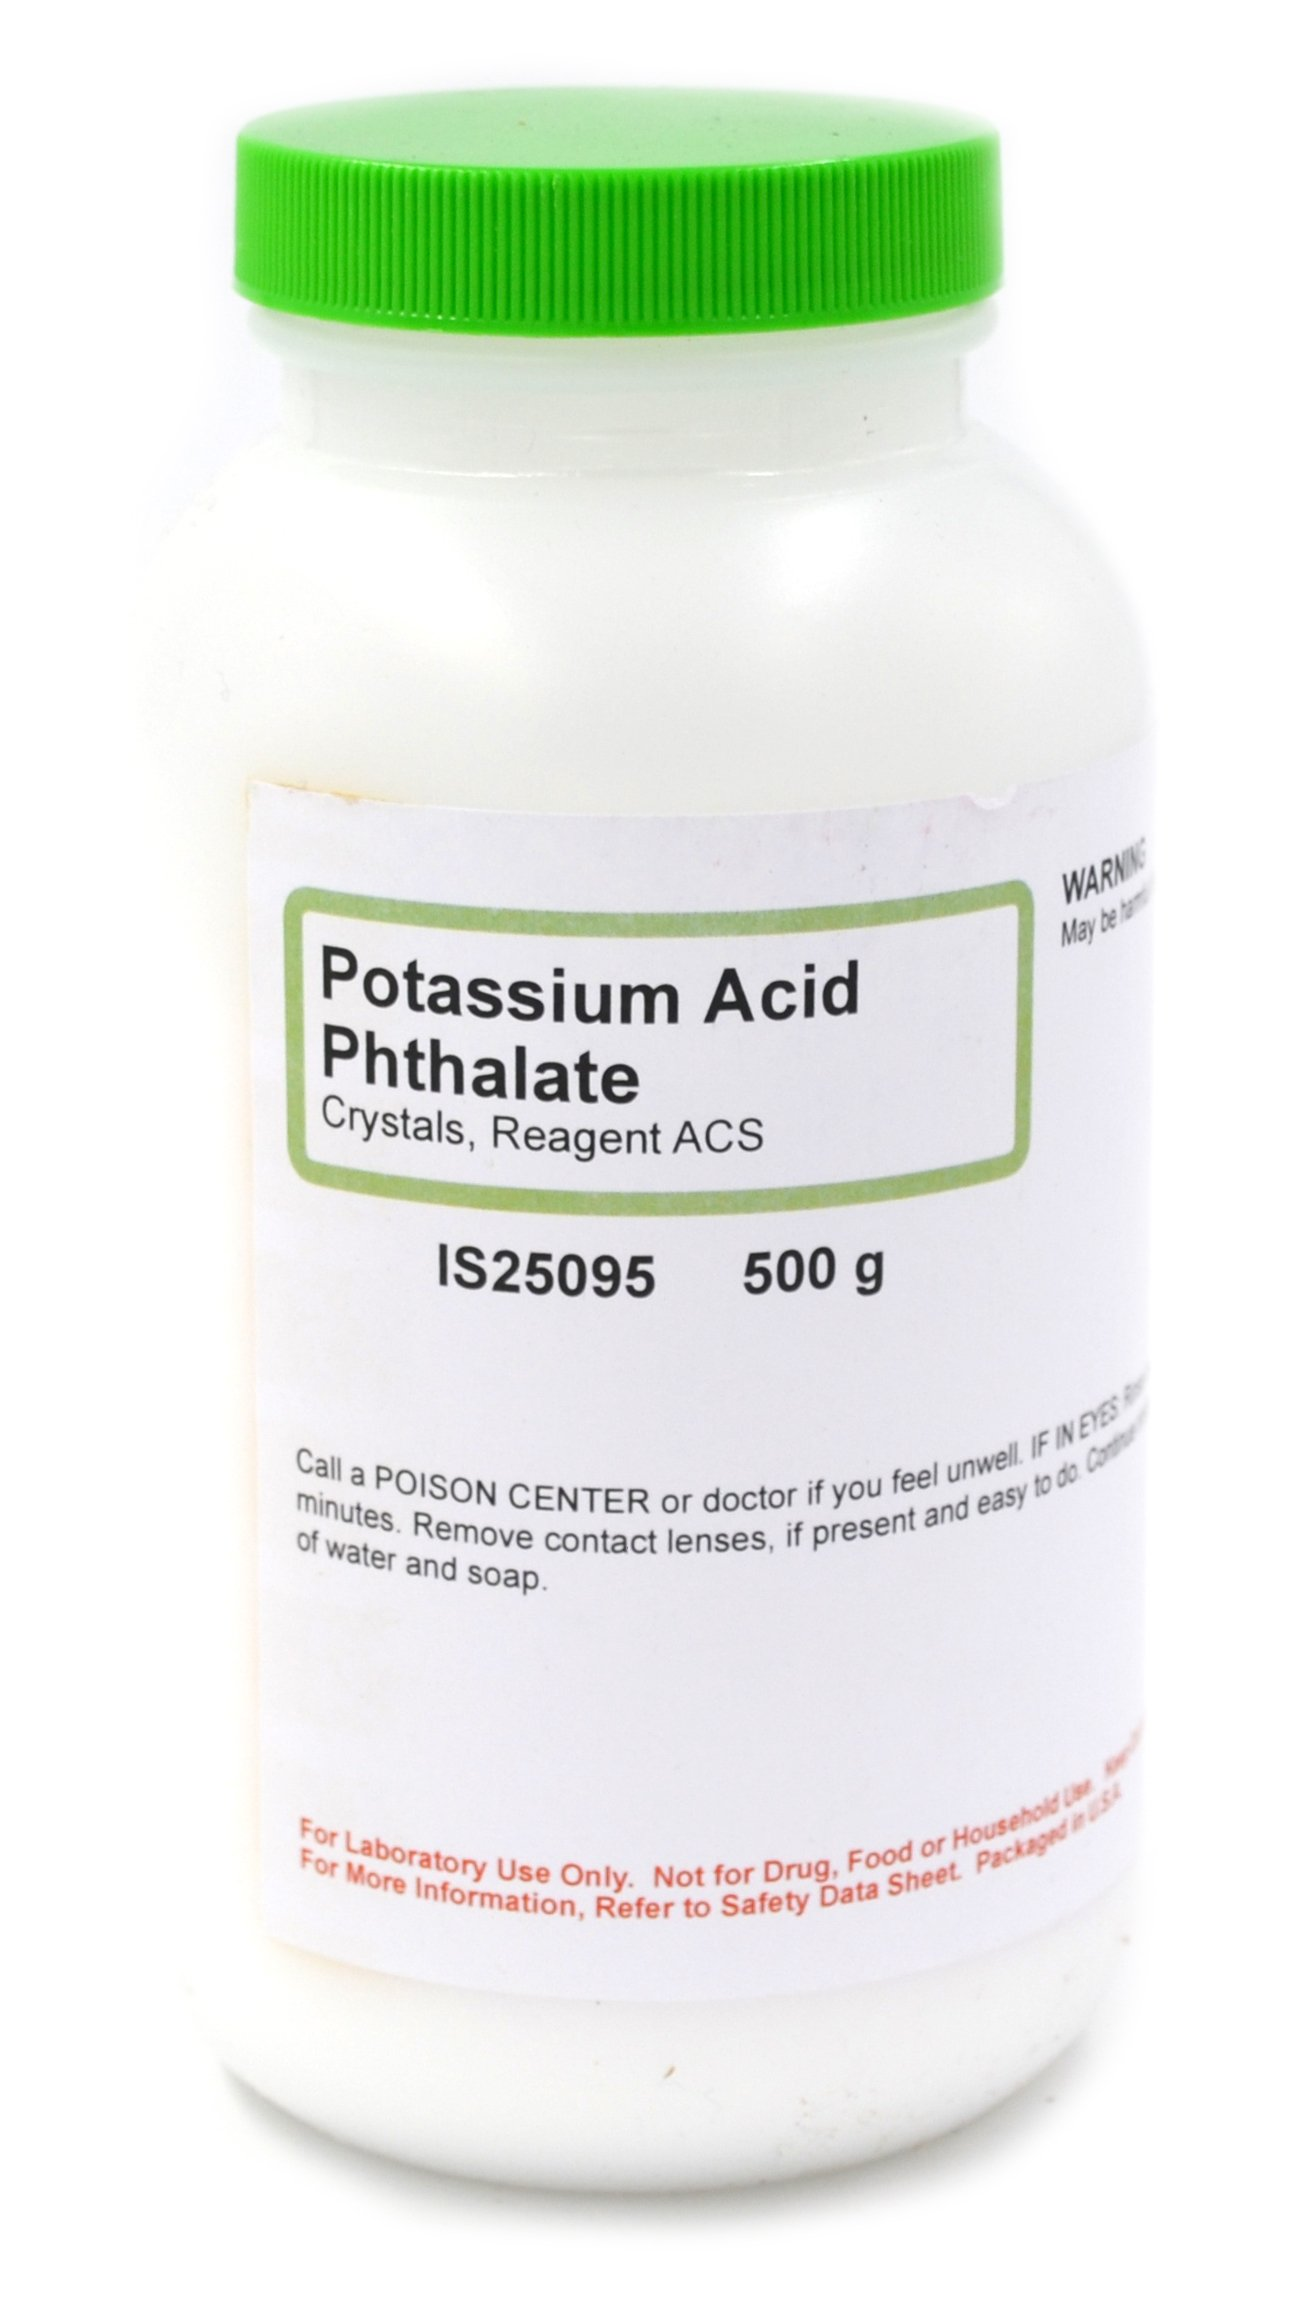 ACS-Grade Potassium Acid Phthalate Crystals, 500g - The Curated Chemical Collection by Innovating Science (Image #1)